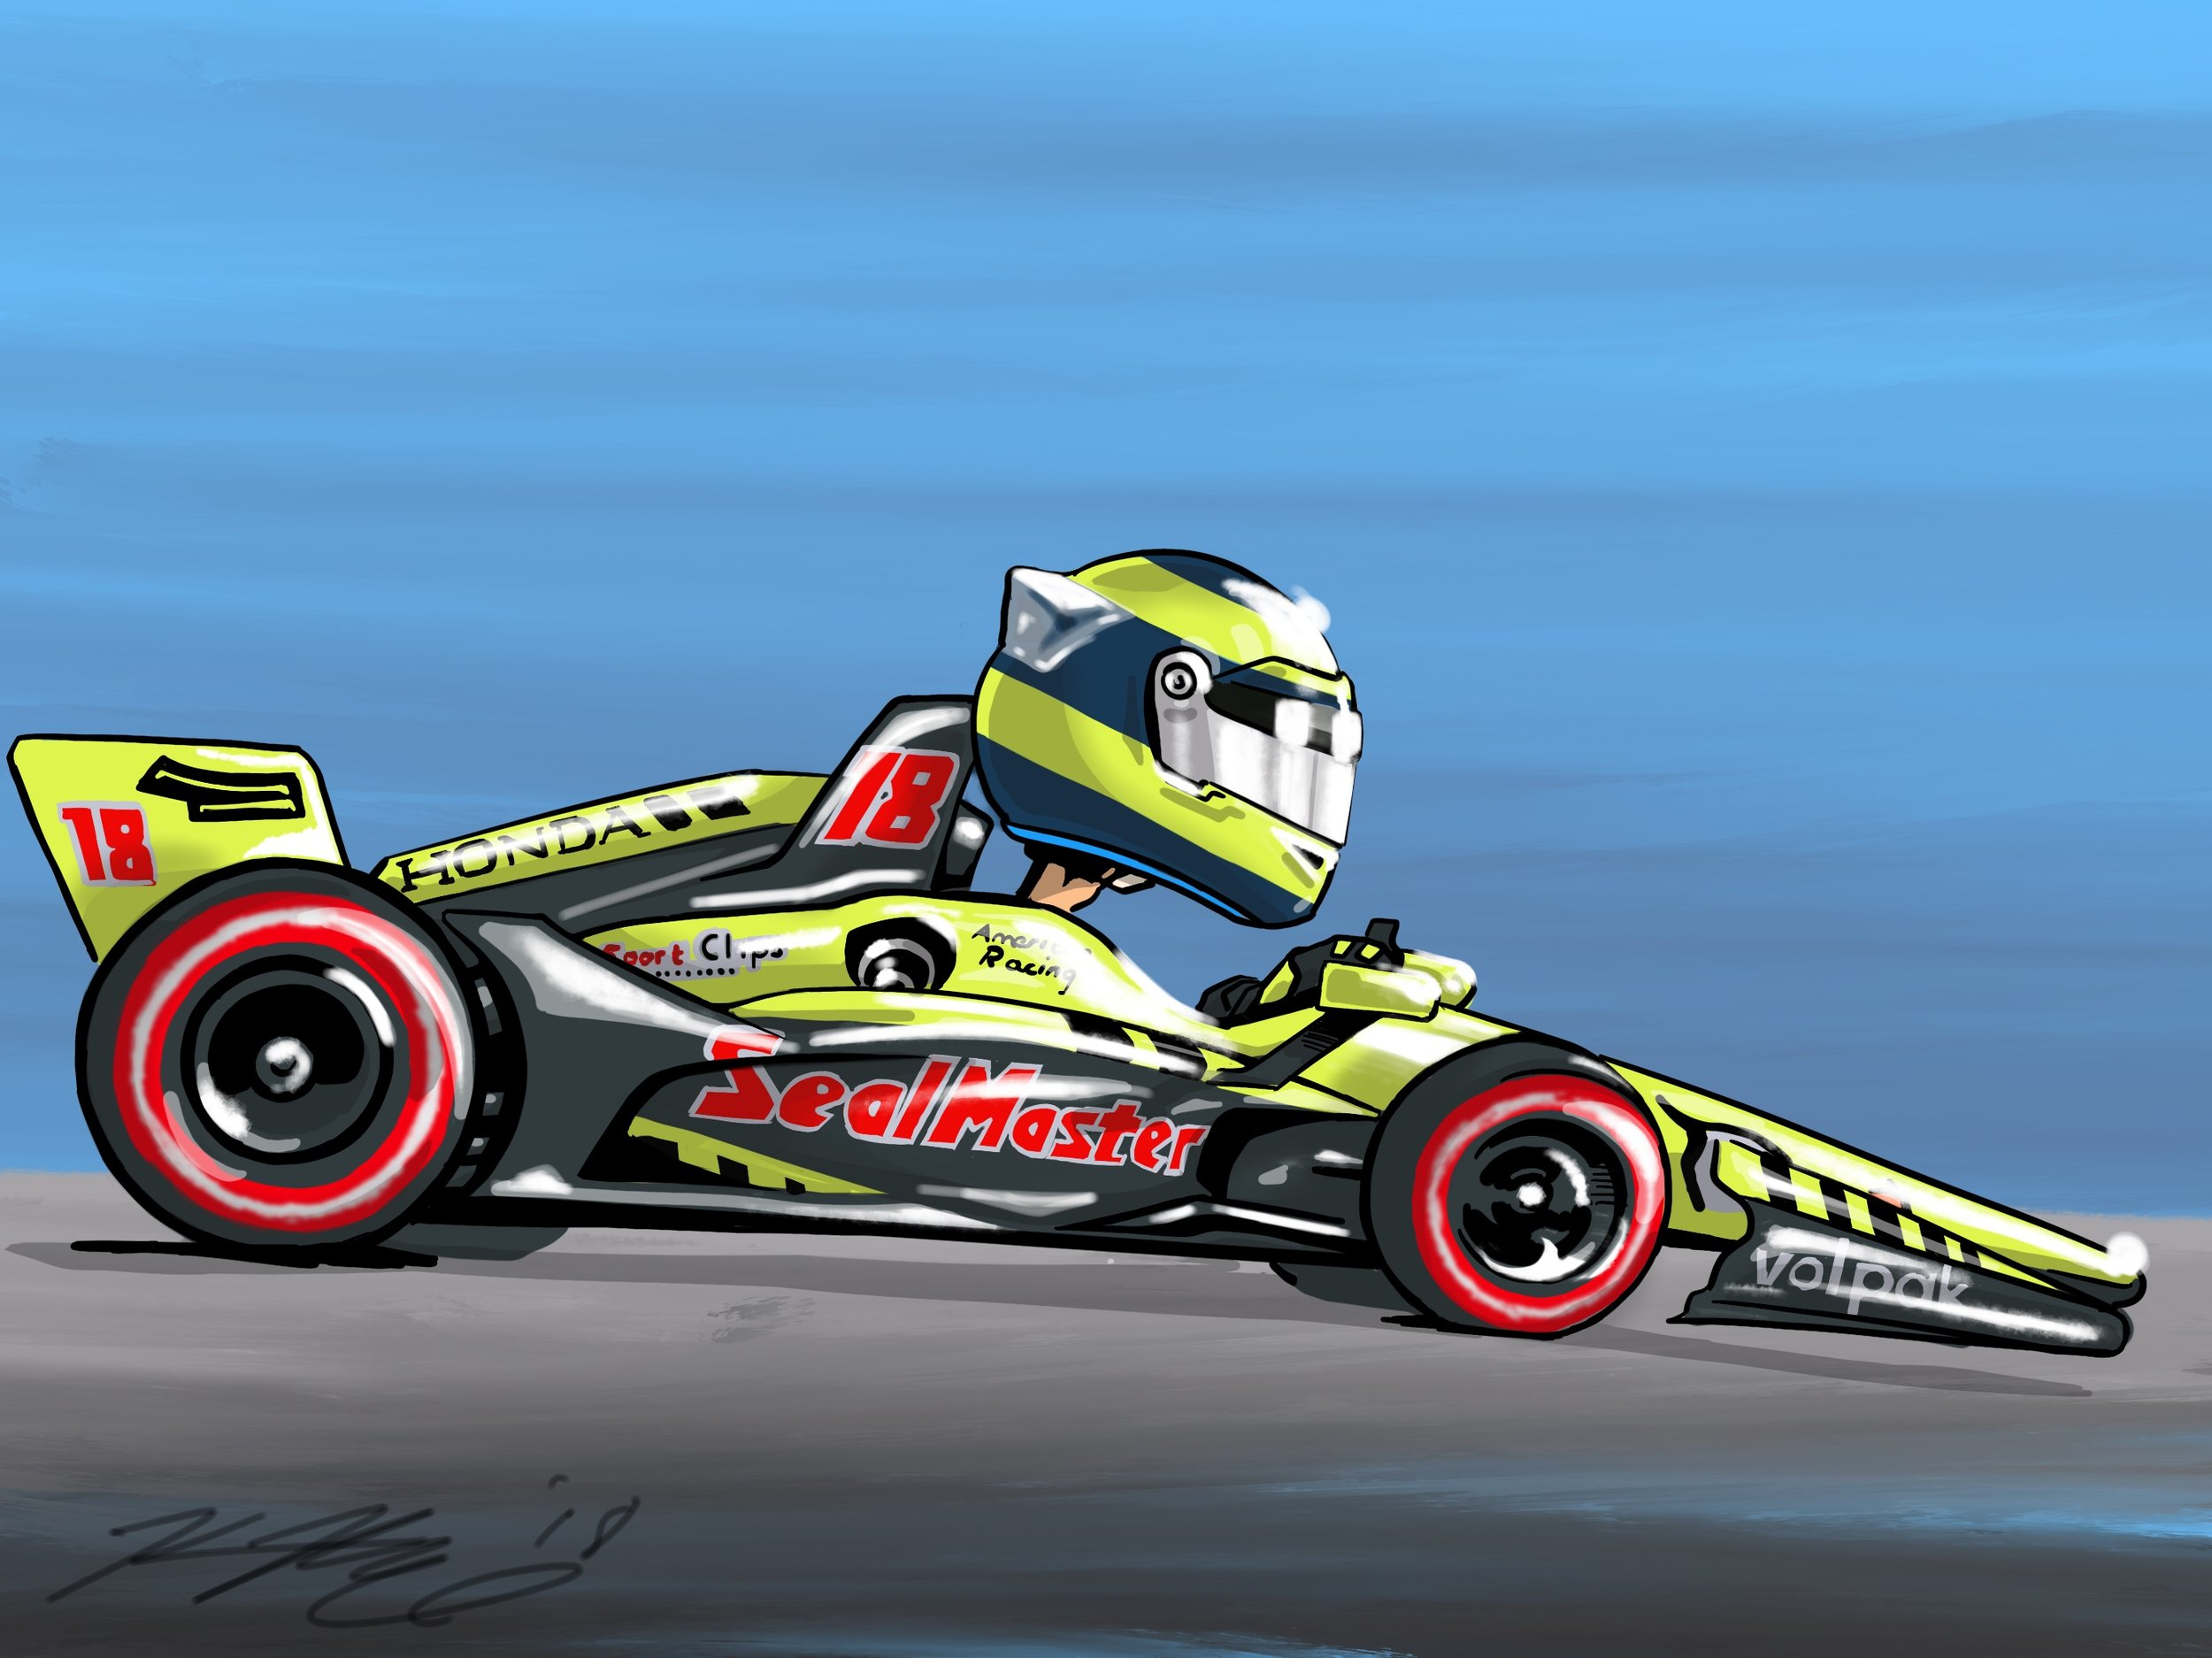 Bourdais Cartoon 2018